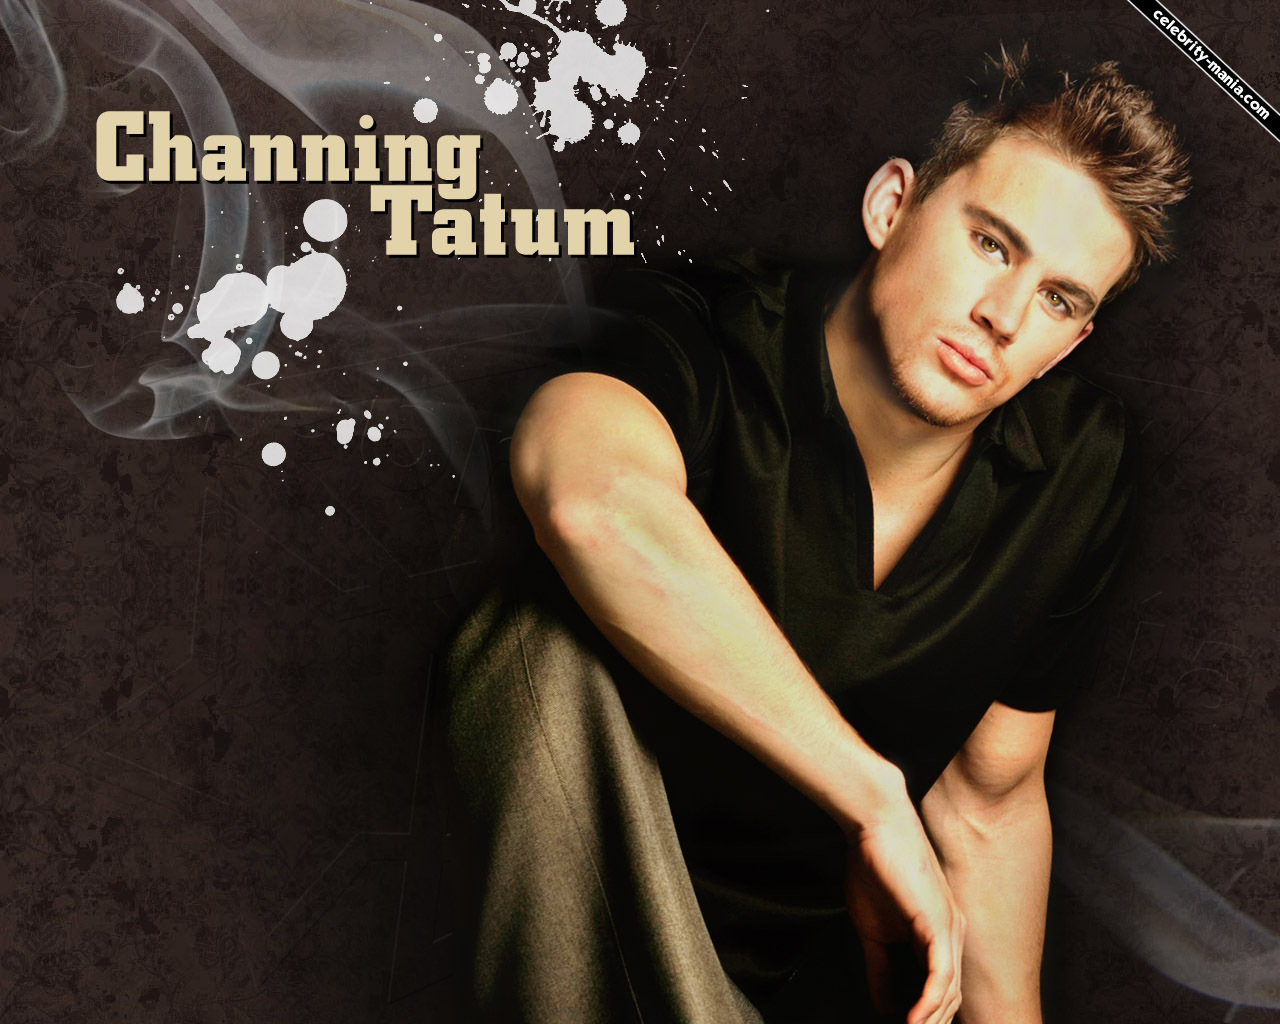 channing tatum images channing hd wallpaper and background